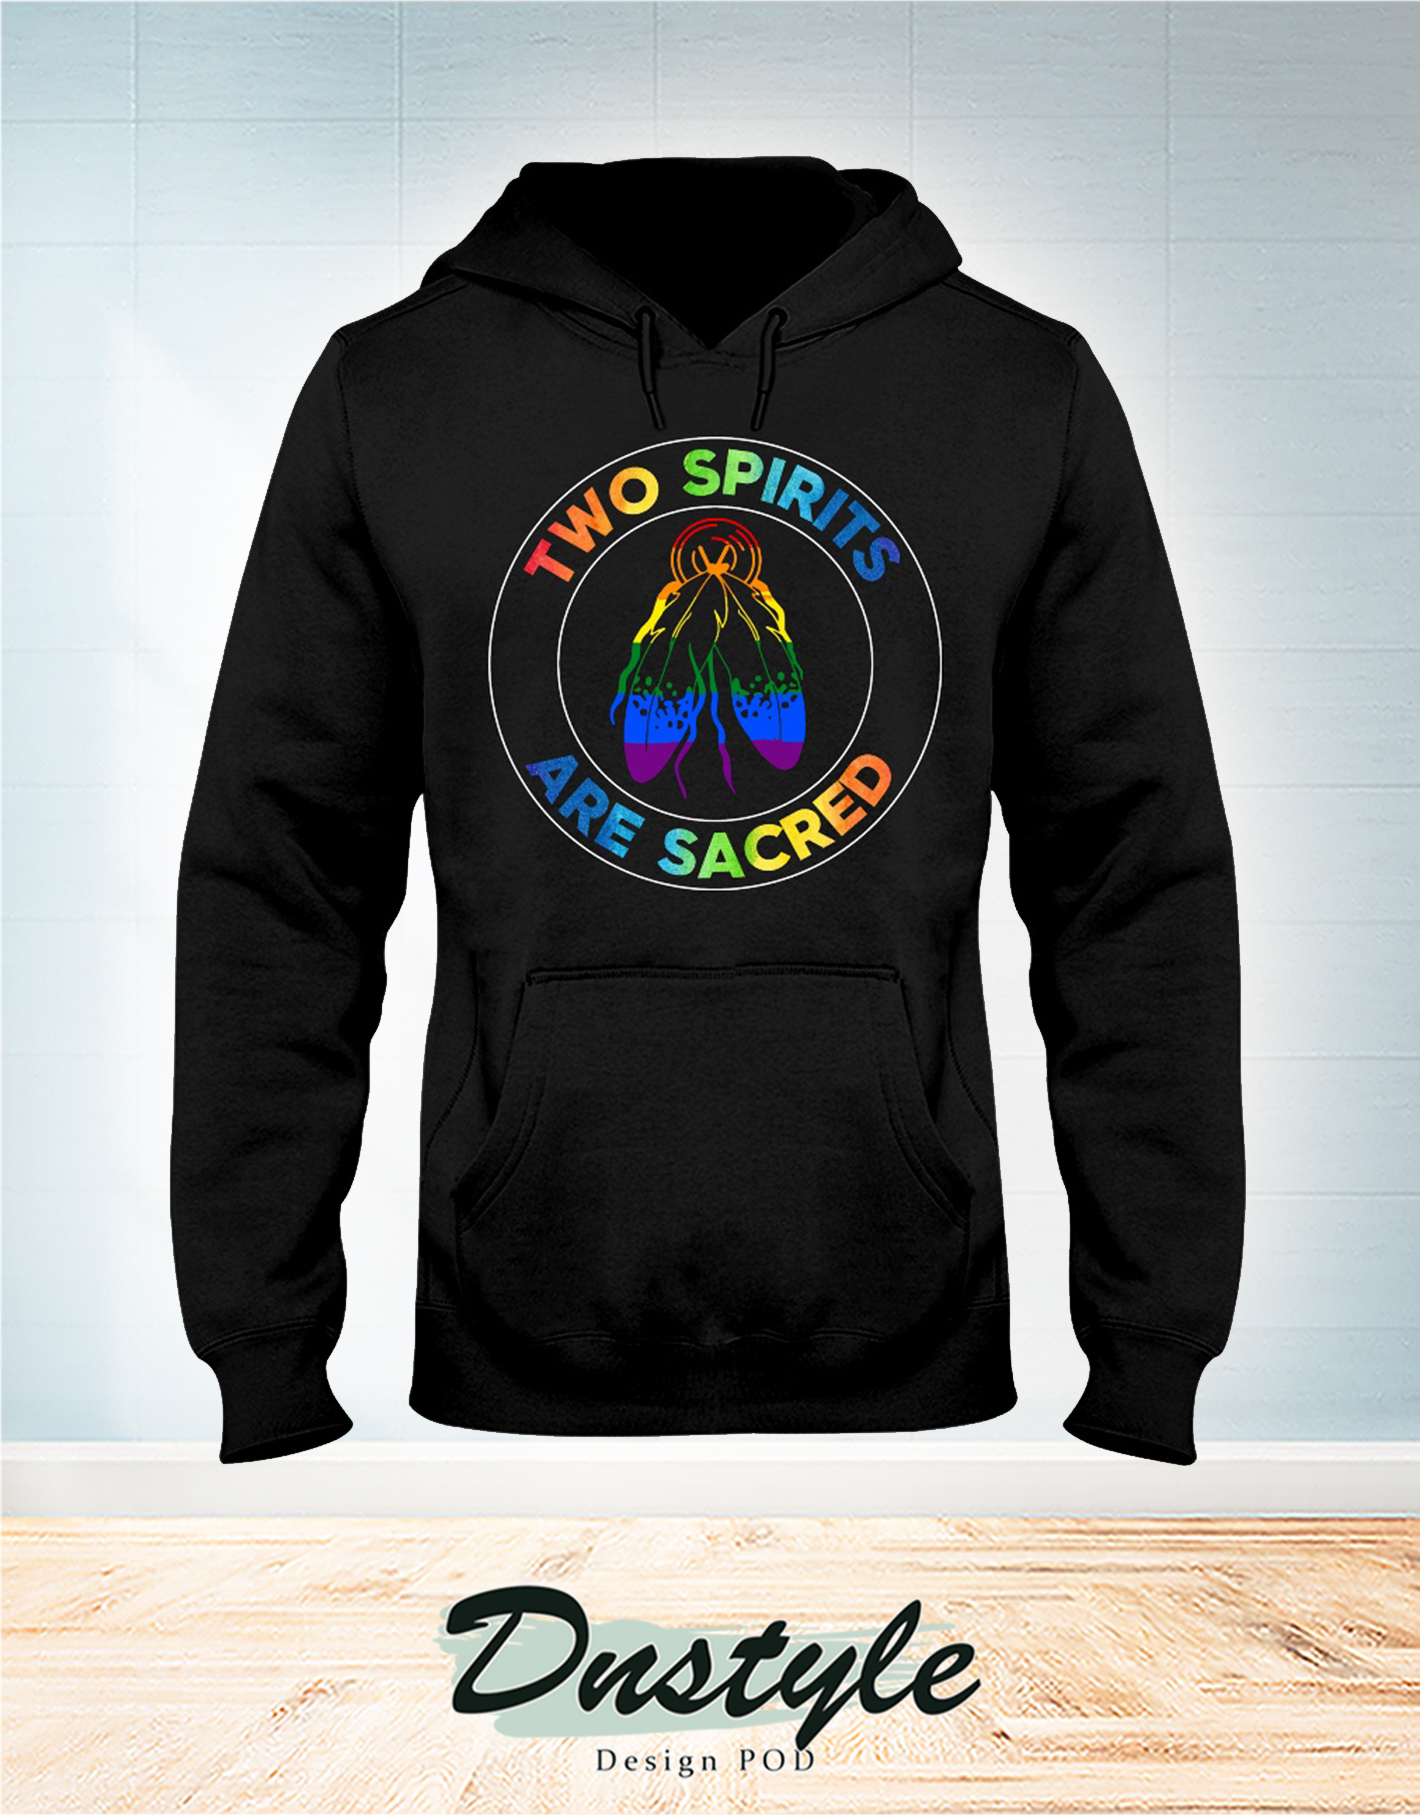 American native two spirits are sacred hoodie